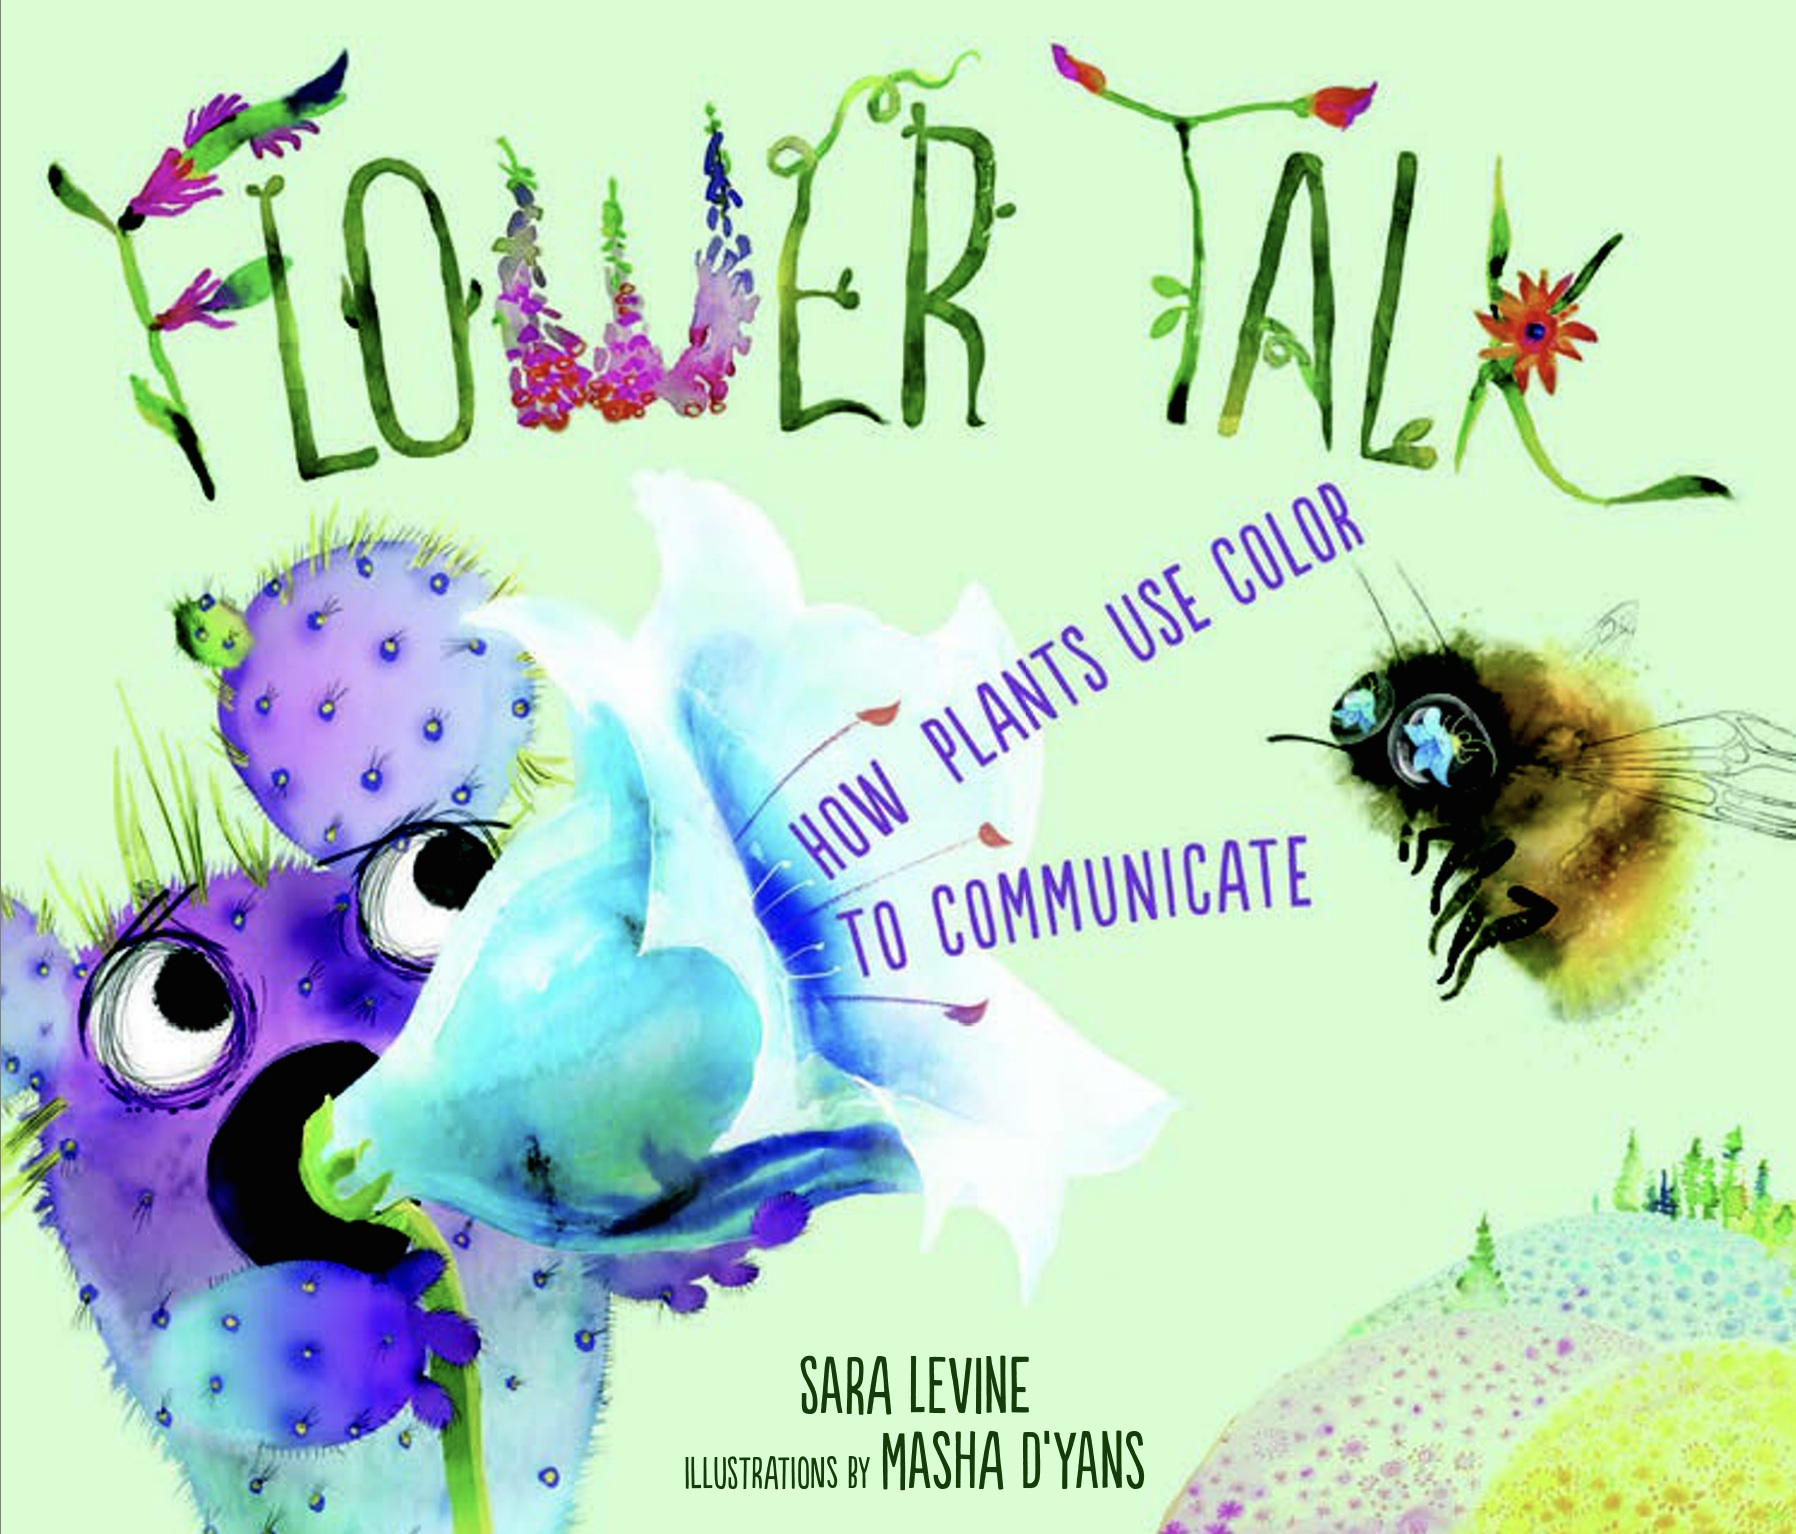 "The image is the cover of a book. It says ""Flower Talk"" in large green letters that are shaped like flowers and vines. There is a purple watercolor cactus holding a light blue flower like a megaphone. Coming out of the flower are the words ""How plants use color to communicate"" and next to the words is a large bumblebee with the blue flower reflected in its eyes."